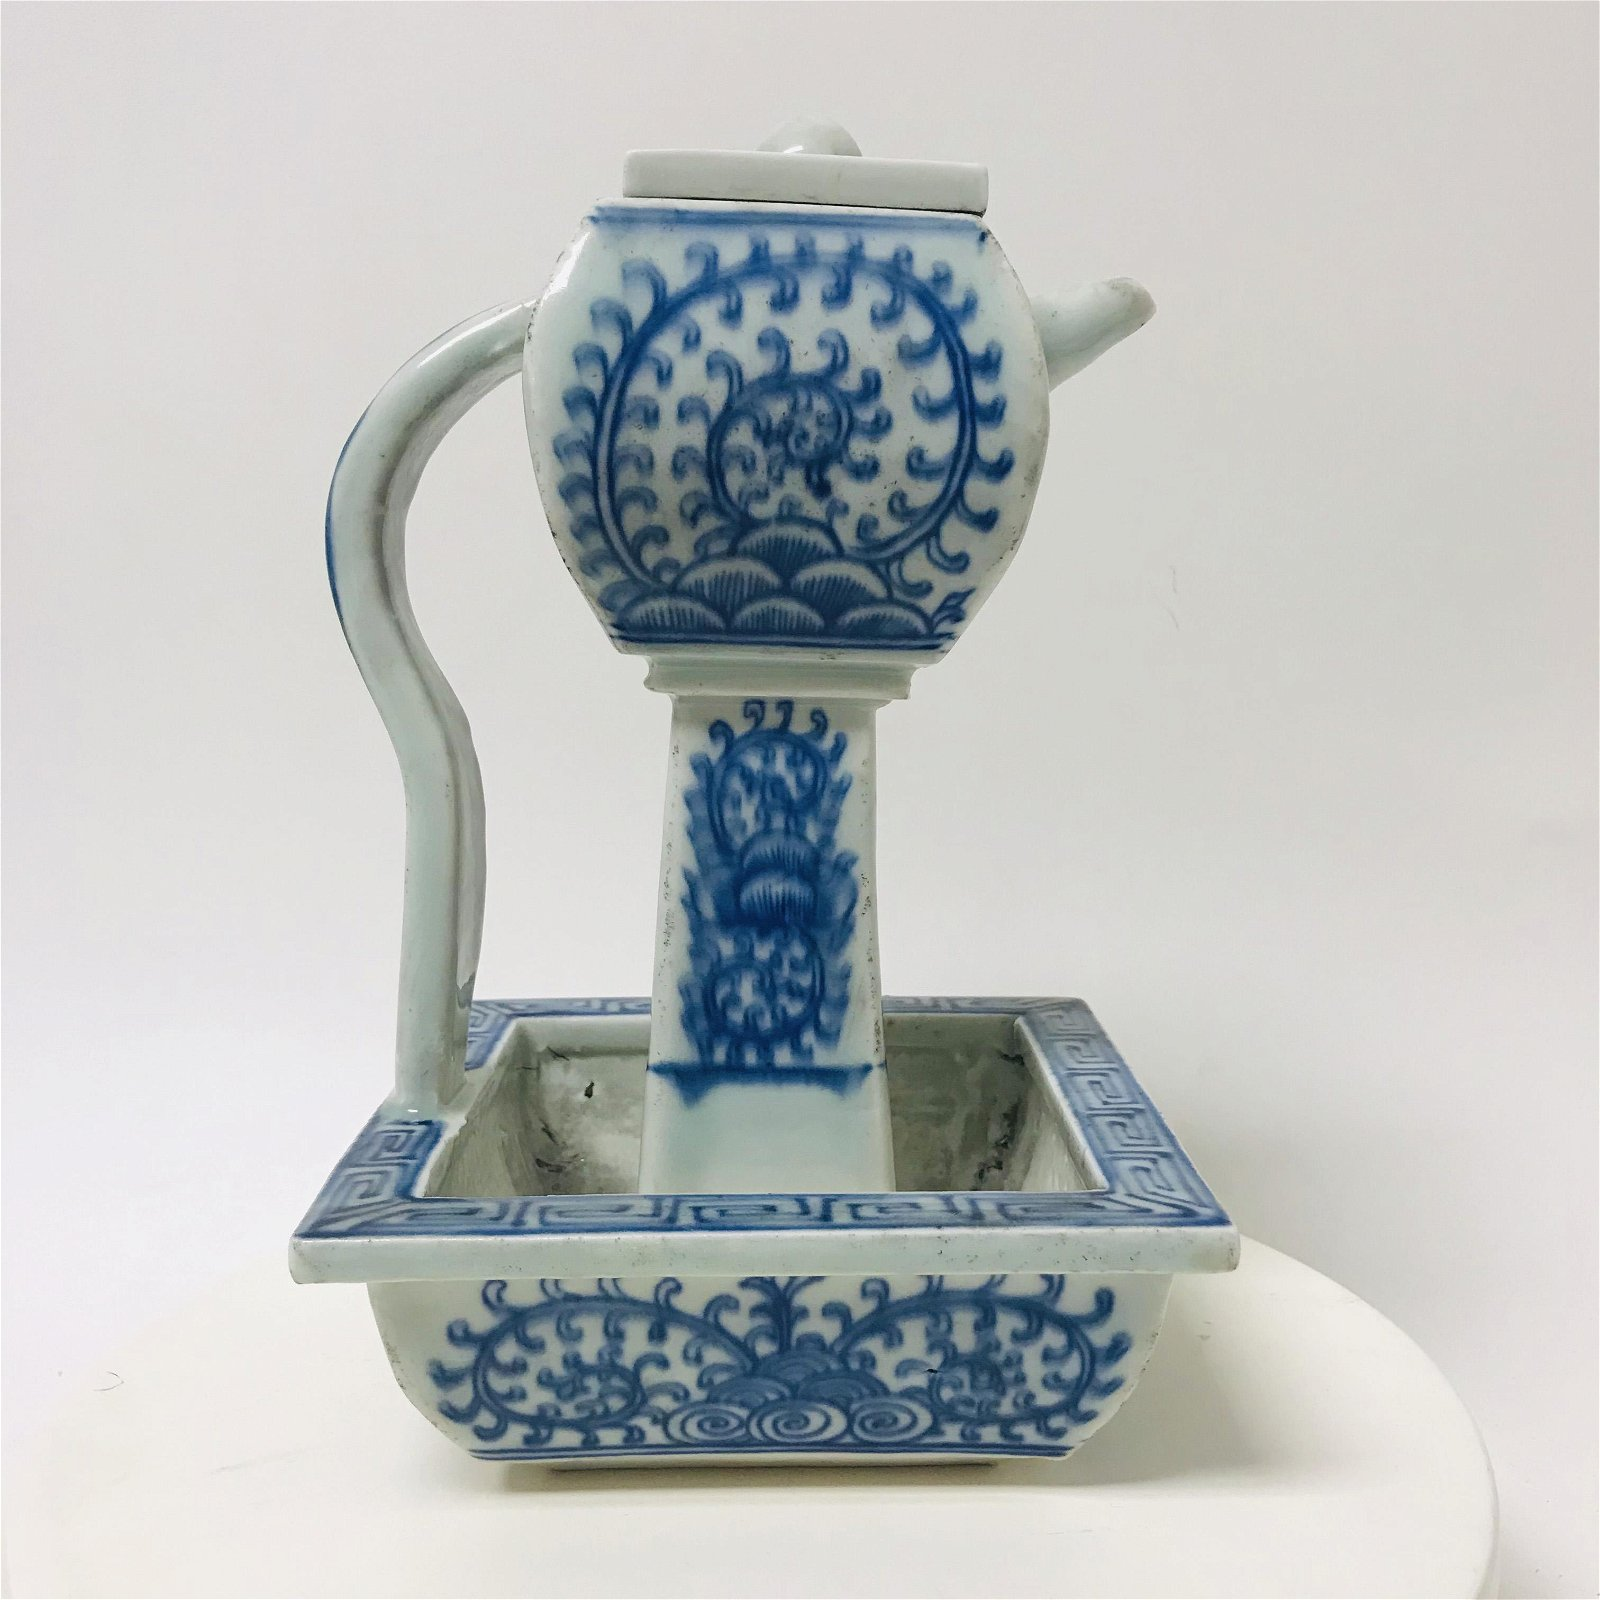 Qing dynasty blue and white porcelain oil lamp pot.